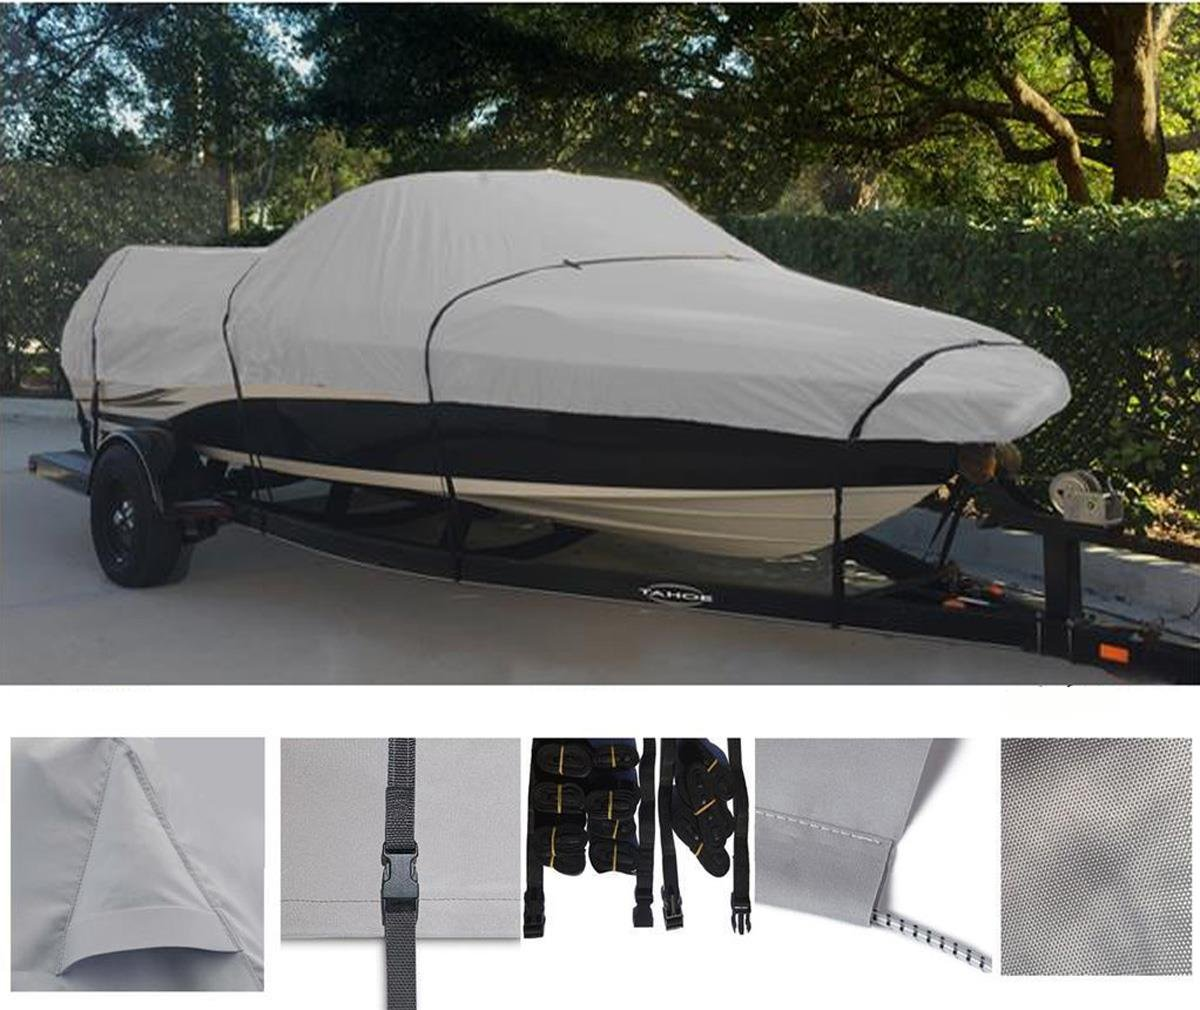 GREY, STORAGE, TRAVEL, MOORING BOAT COVER FOR FOREST RIVER FISH ON V170SC 2002-2004 by SBU